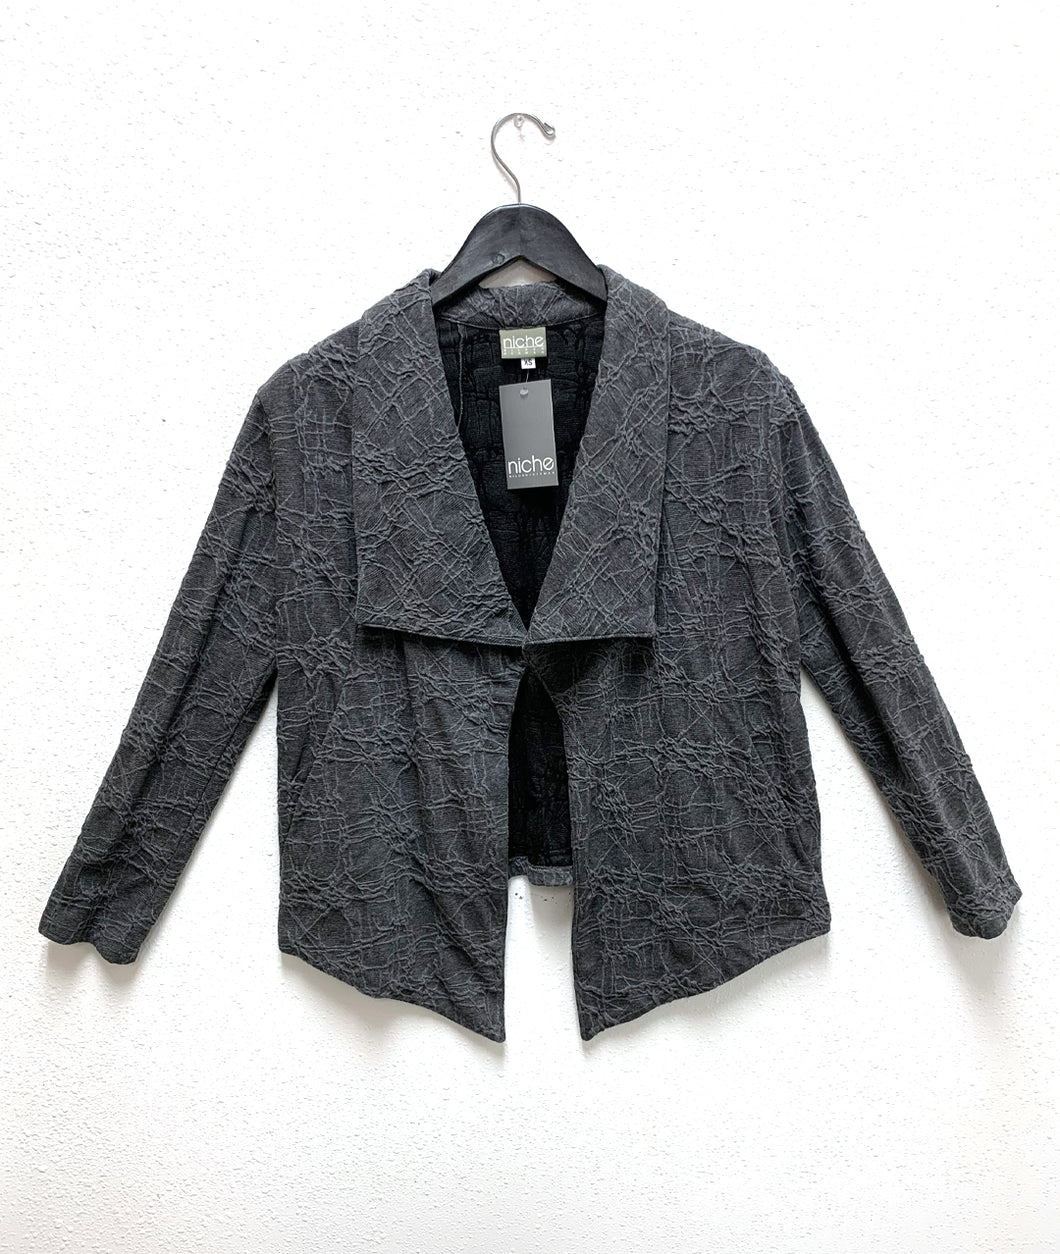 grey jacket in a web print knit. jacket has a draped large collar and long sleeves, and the body hem is lower in the front center than the rest of the body